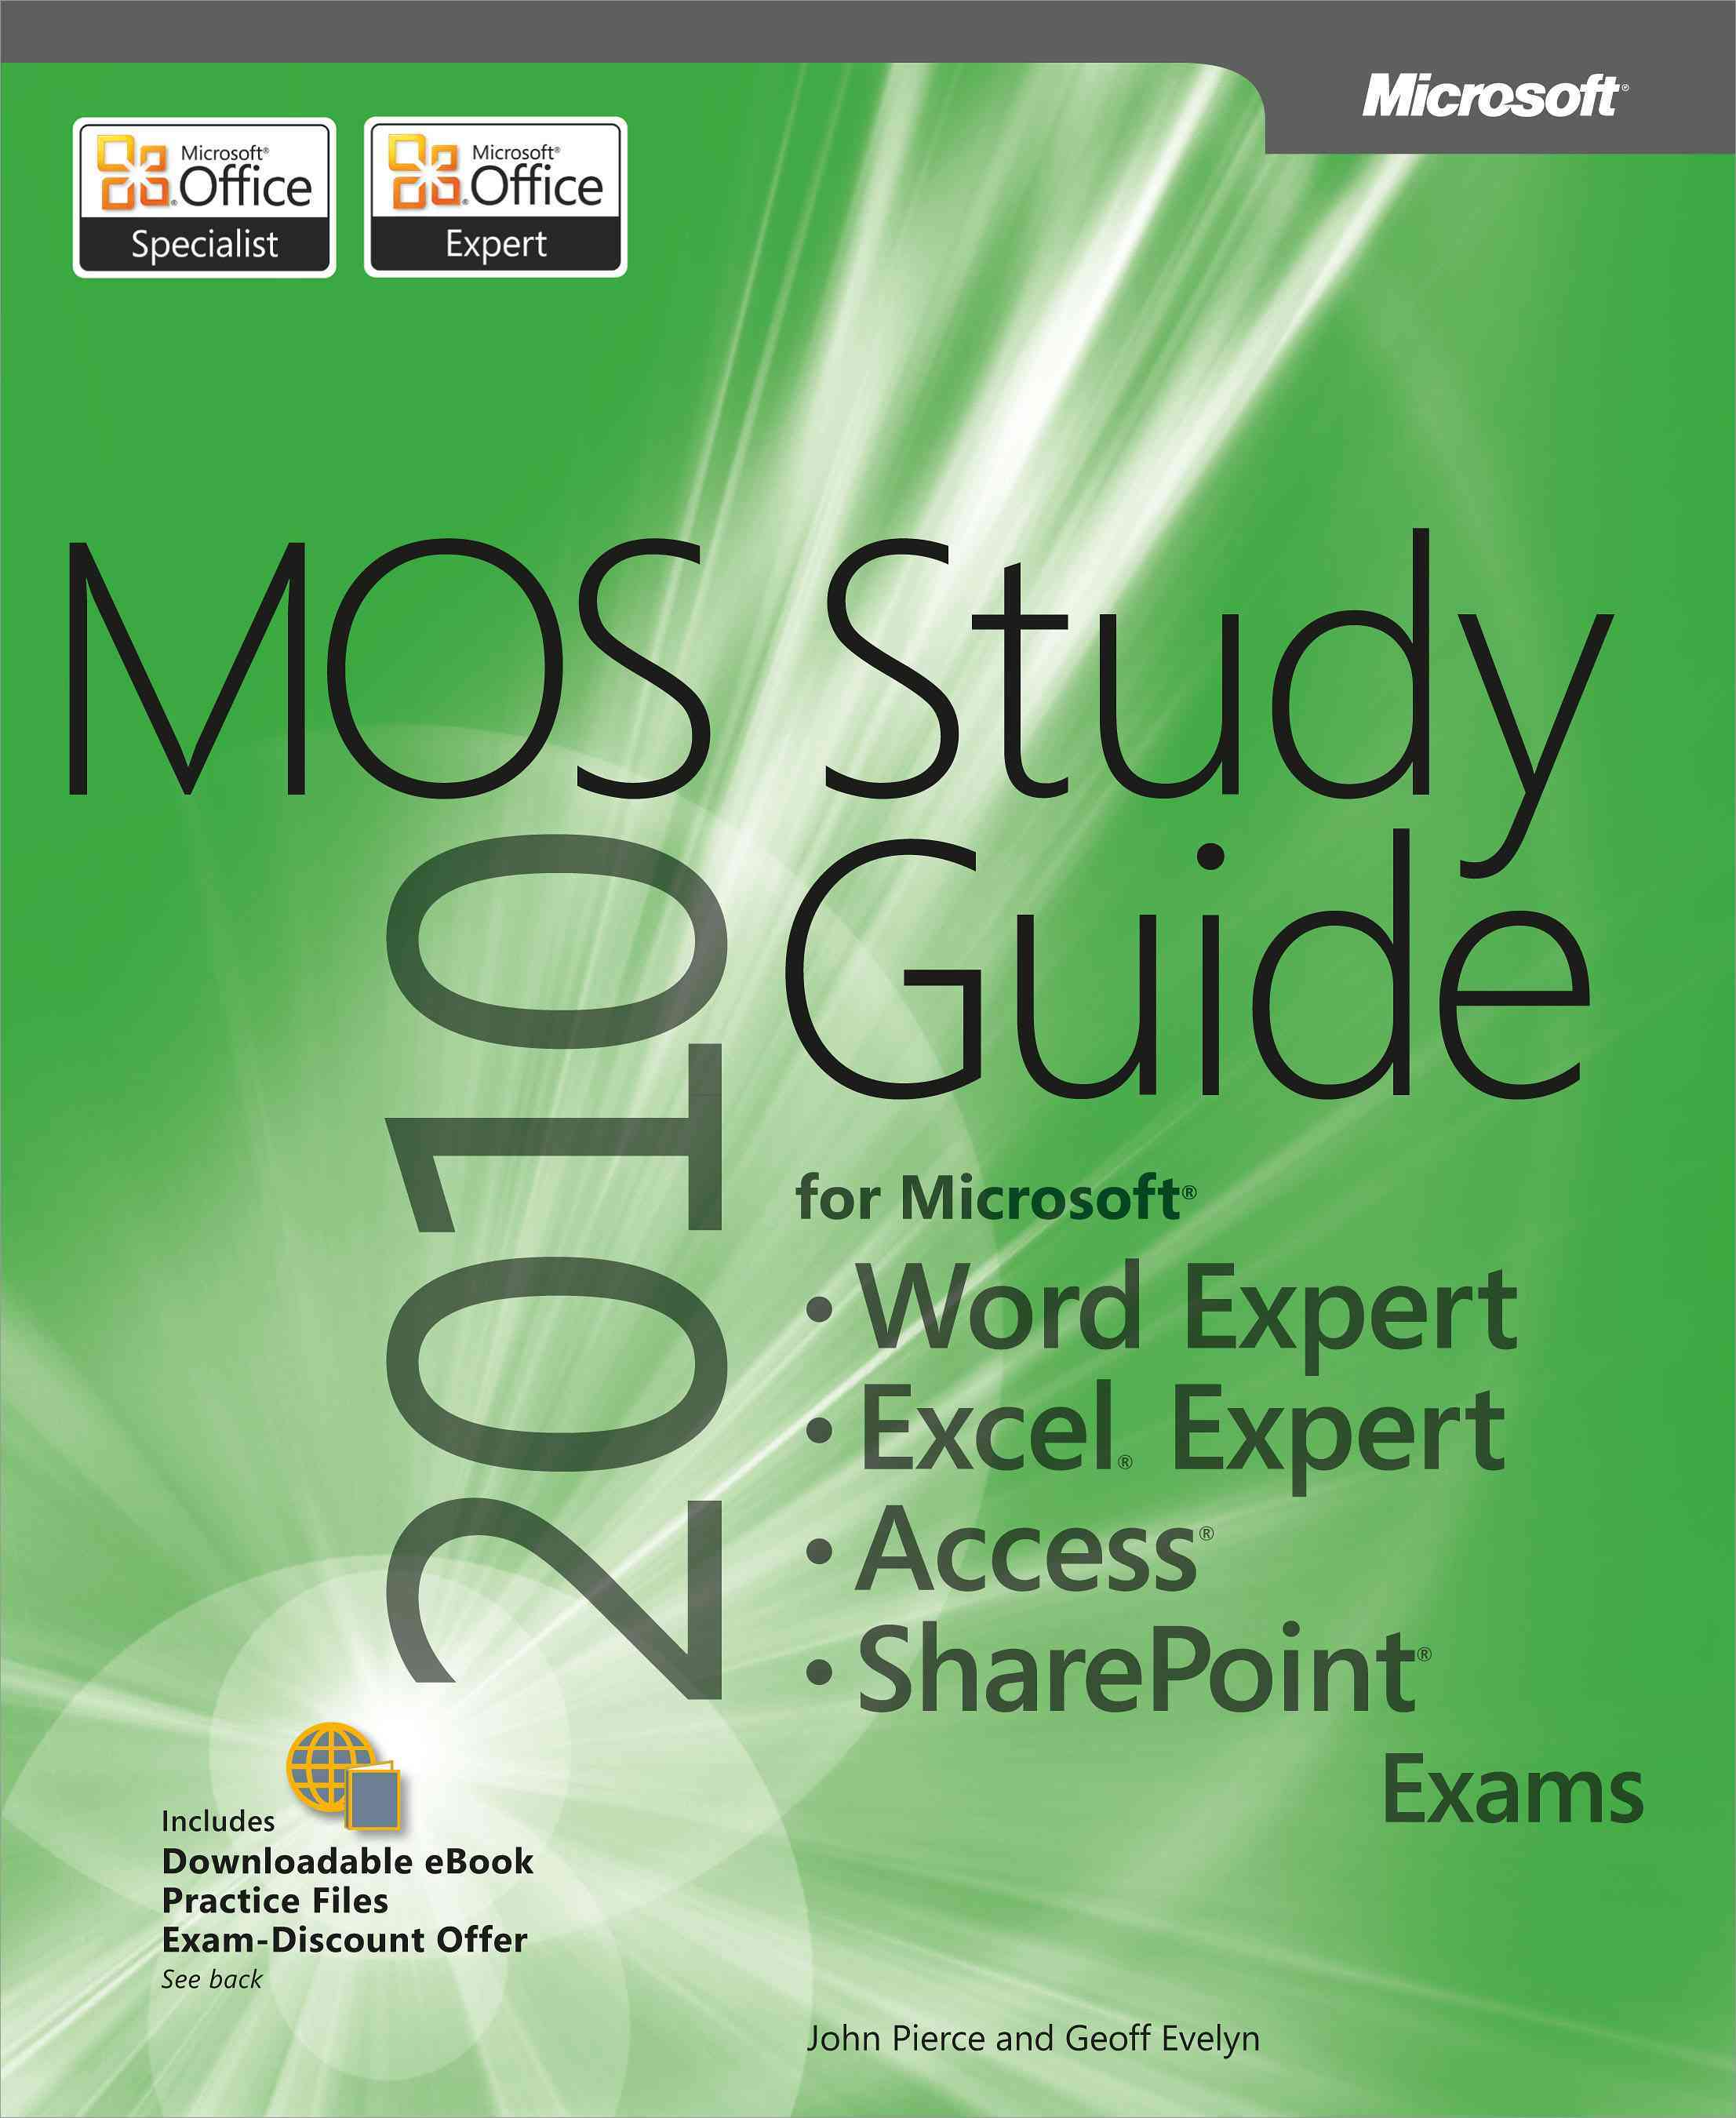 MOS 2010 Study Guide: For Microsoft Word Expert, Excel Expert, Access, and Sharepoint Exams